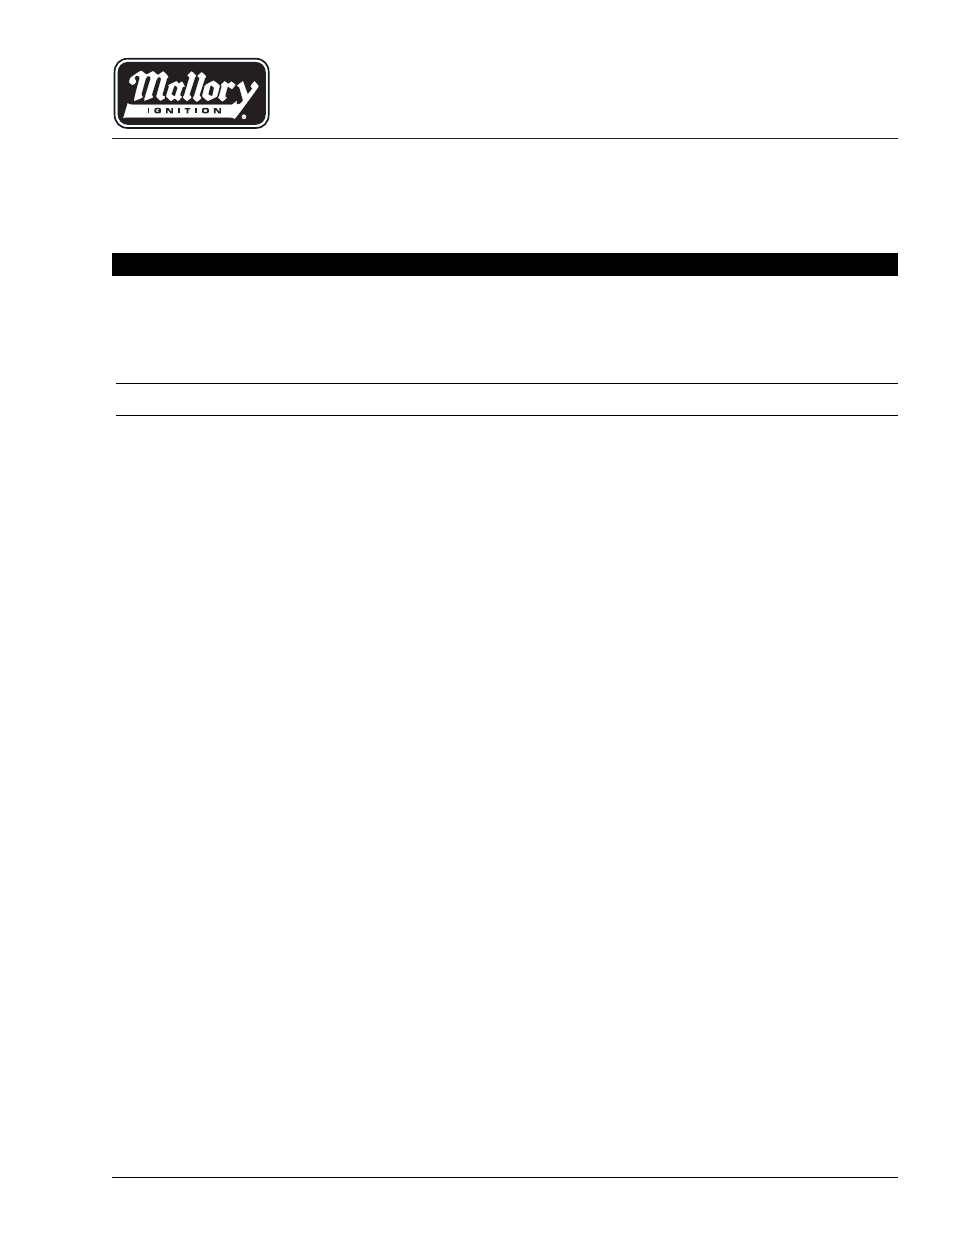 mallory ignition mallory unilite distributor page1 mallory ignition mallory unilite distributor user manual 13 mallory ignition wiring diagram at crackthecode.co